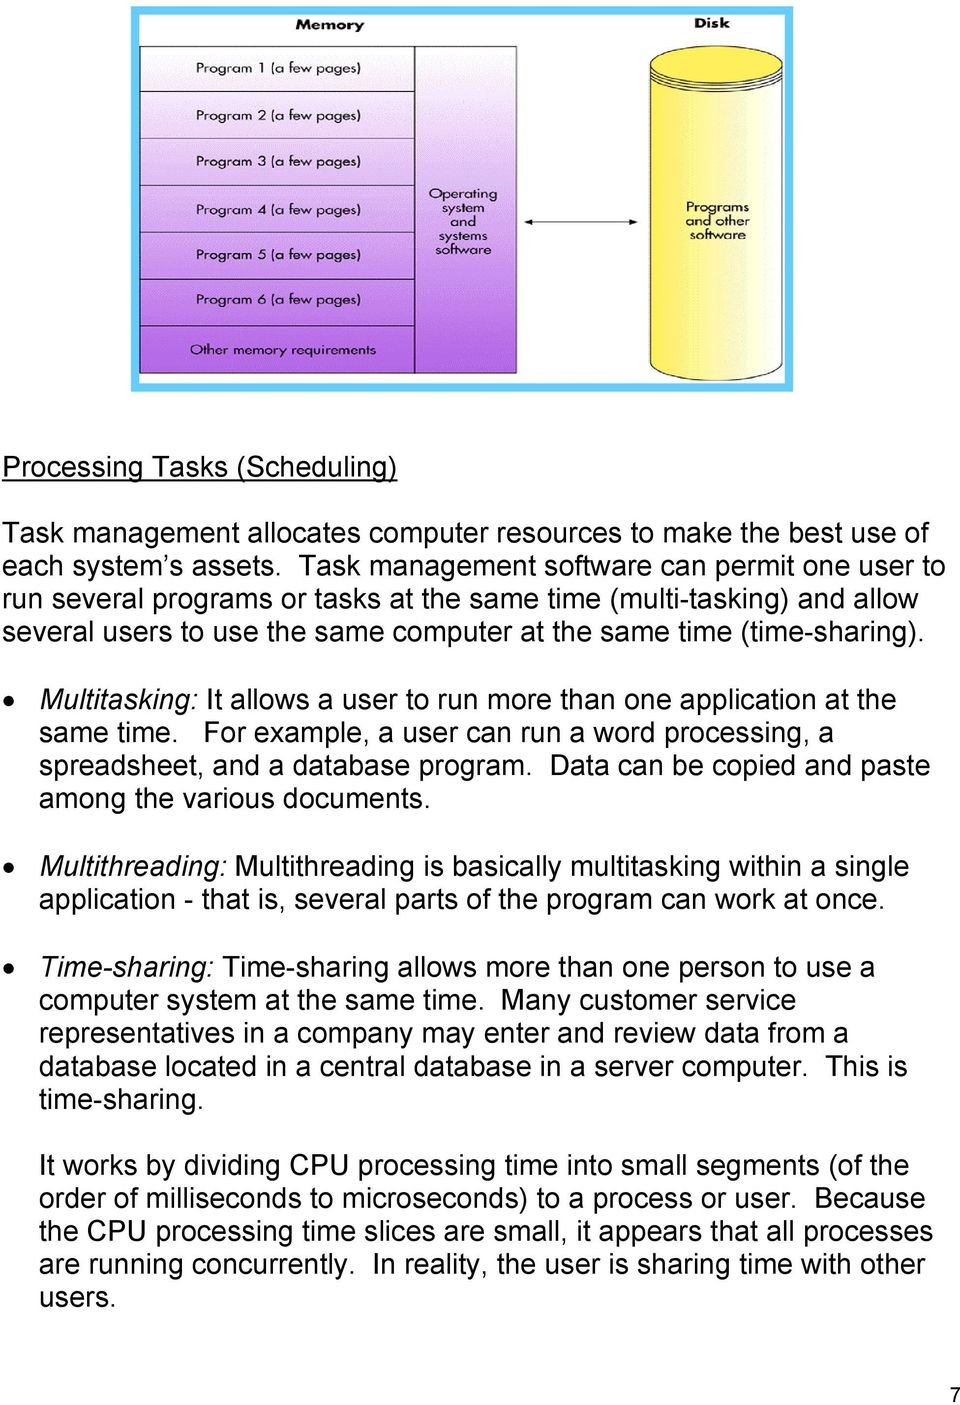 Multitasking: It allows a user to run more than one application at the same time. For example, a user can run a word processing, a spreadsheet, and a database program.